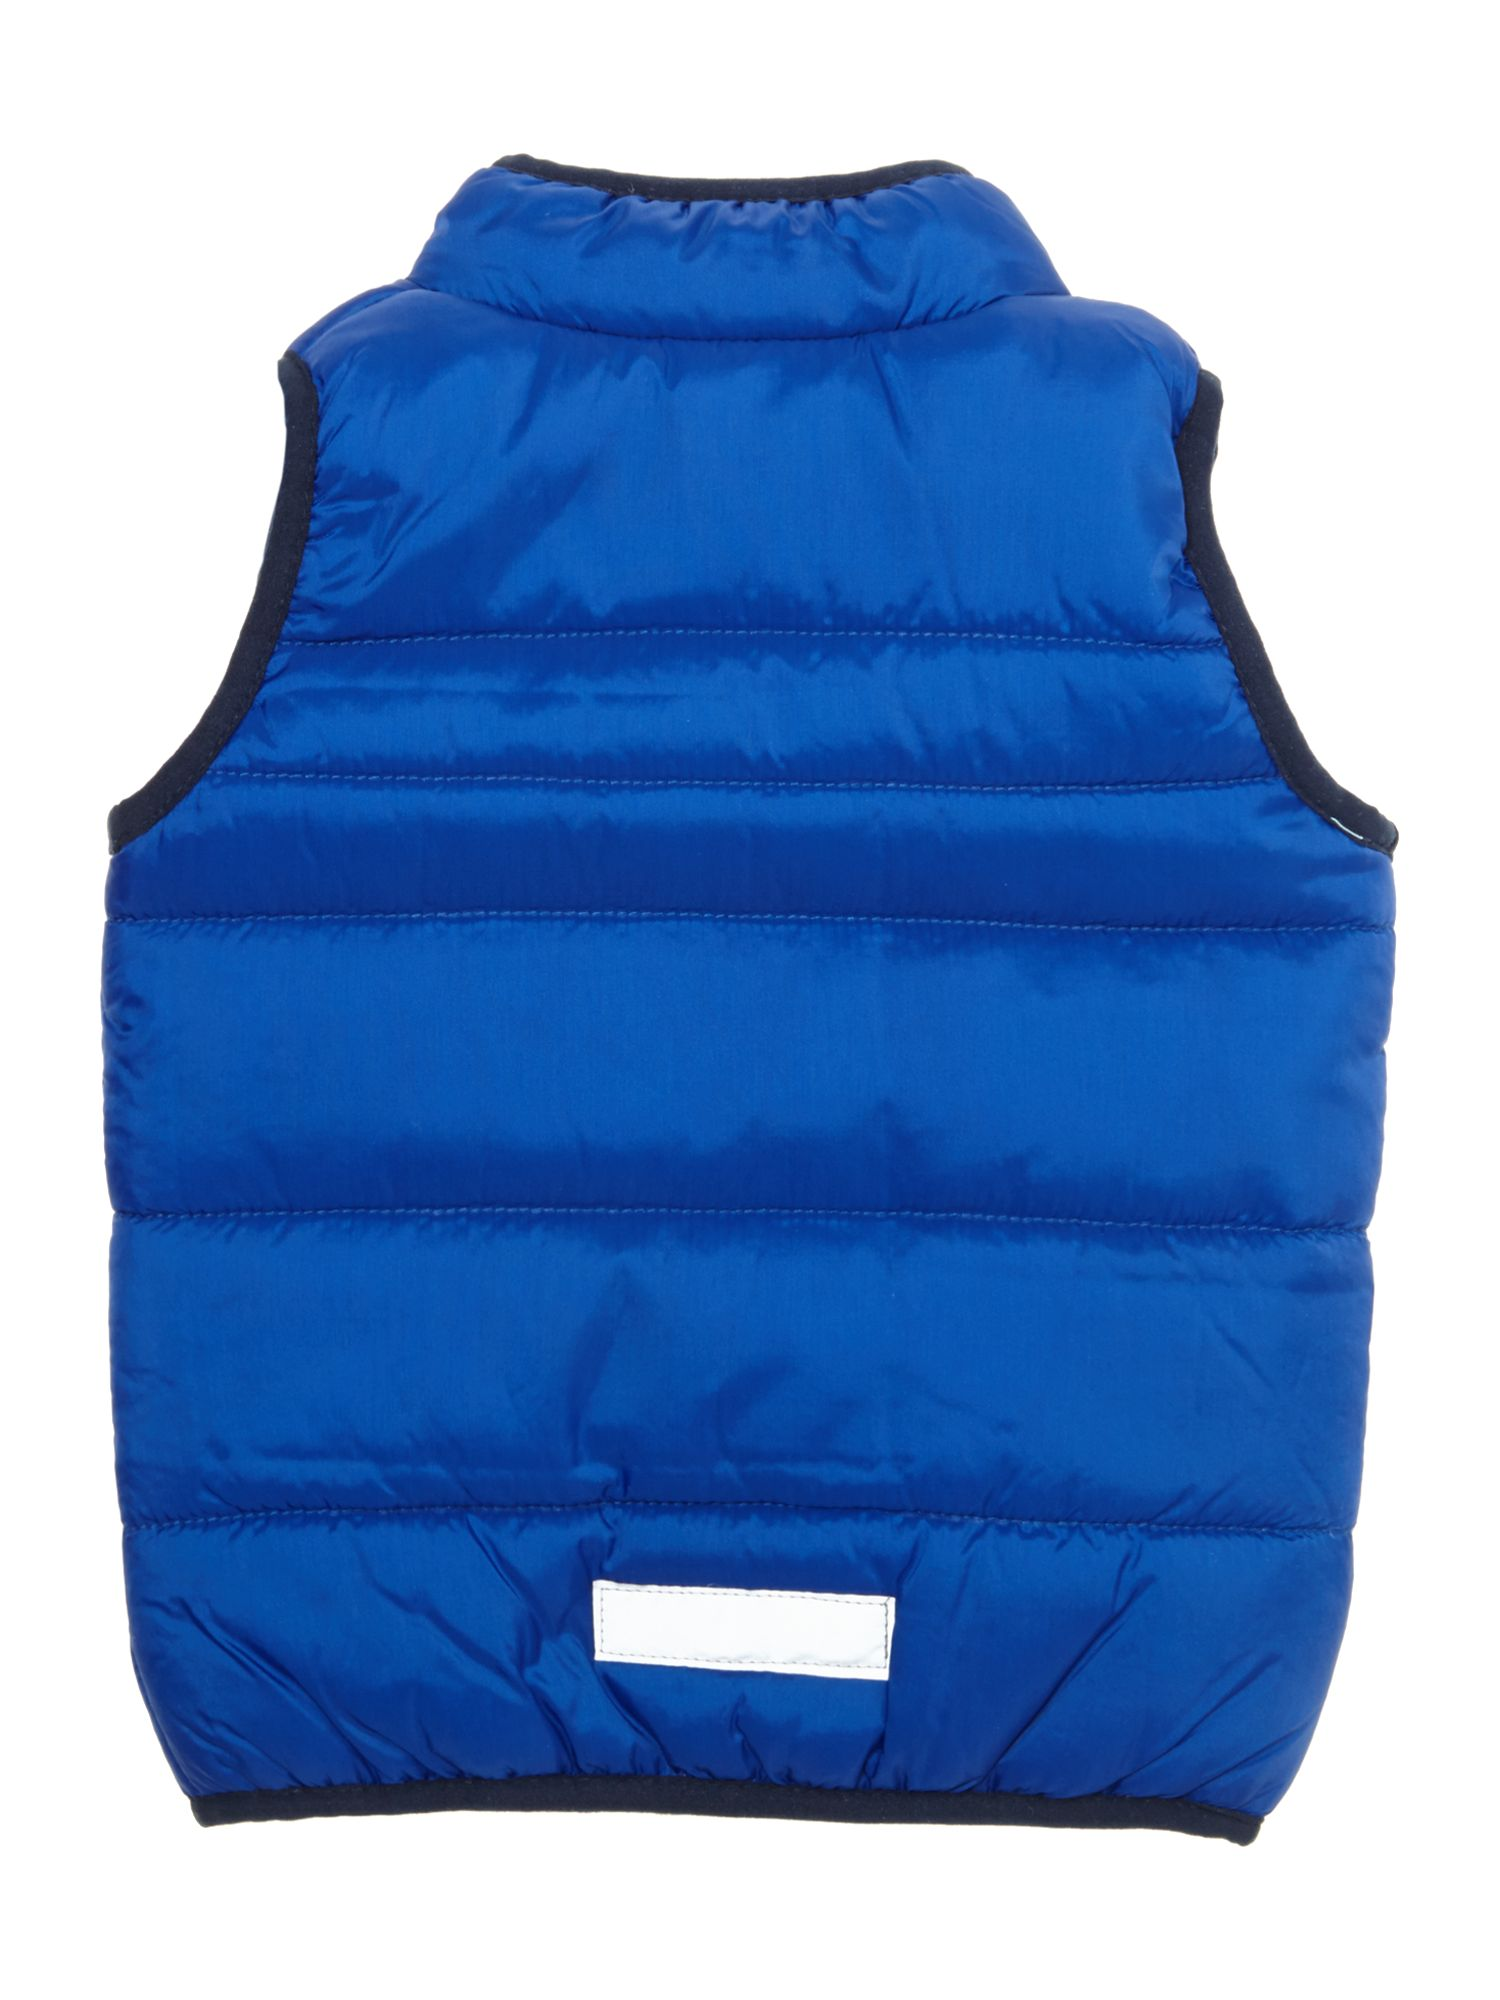 Boys gilet with pockets